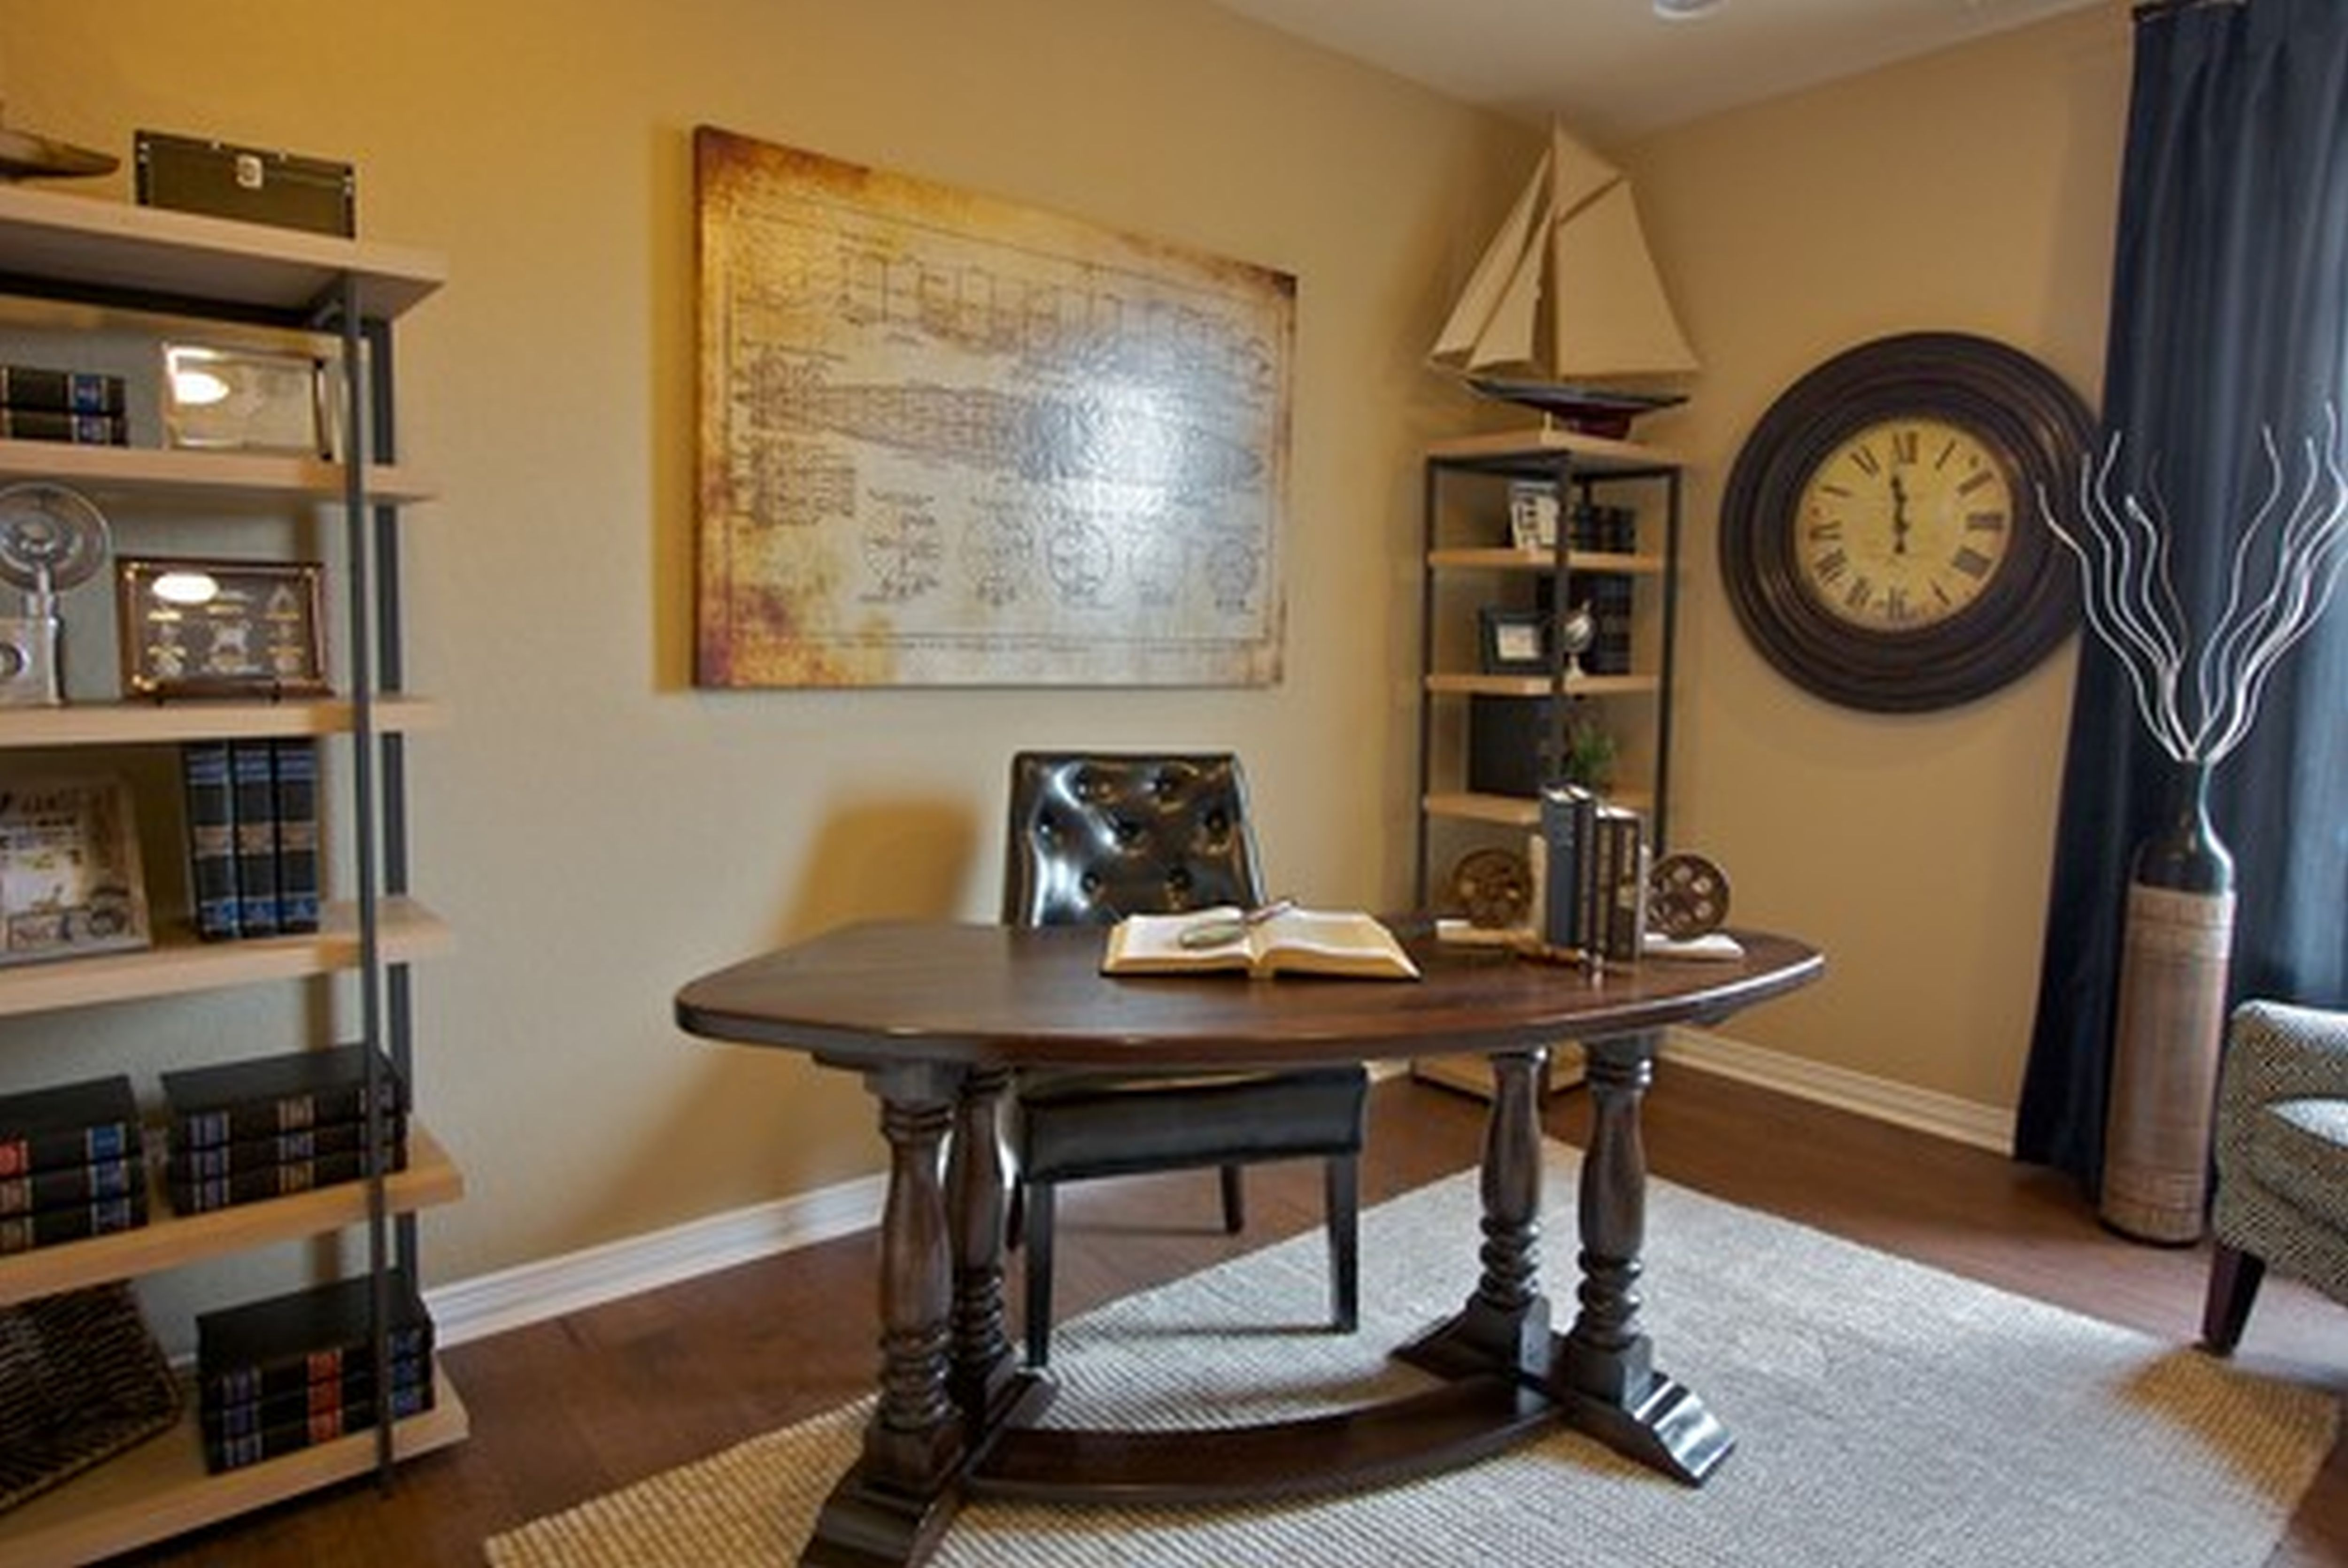 Complete Classic Office Decor Ideas with Curve Oak Table and Tufted Leather Chair on Grey Carpet